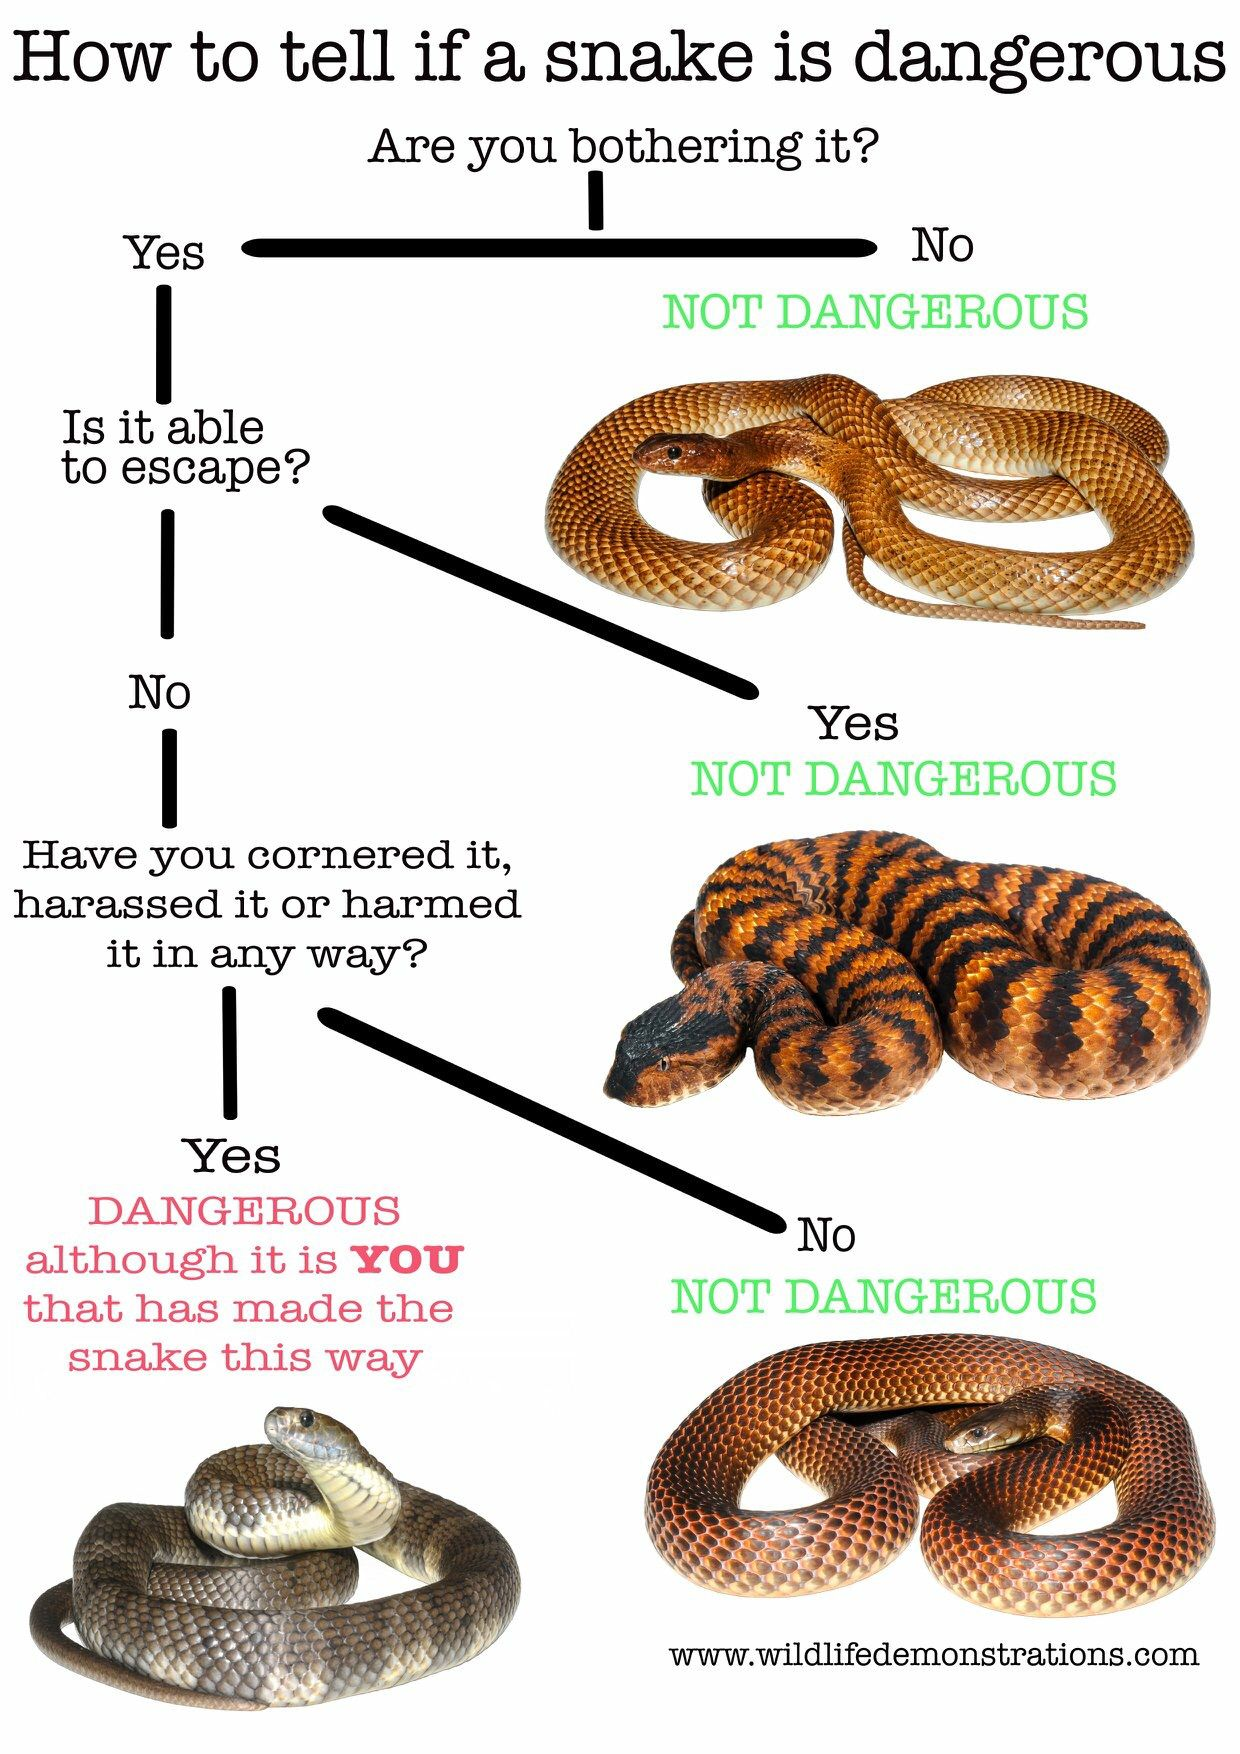 We devised a simple flow chart on how to tell if s snake is